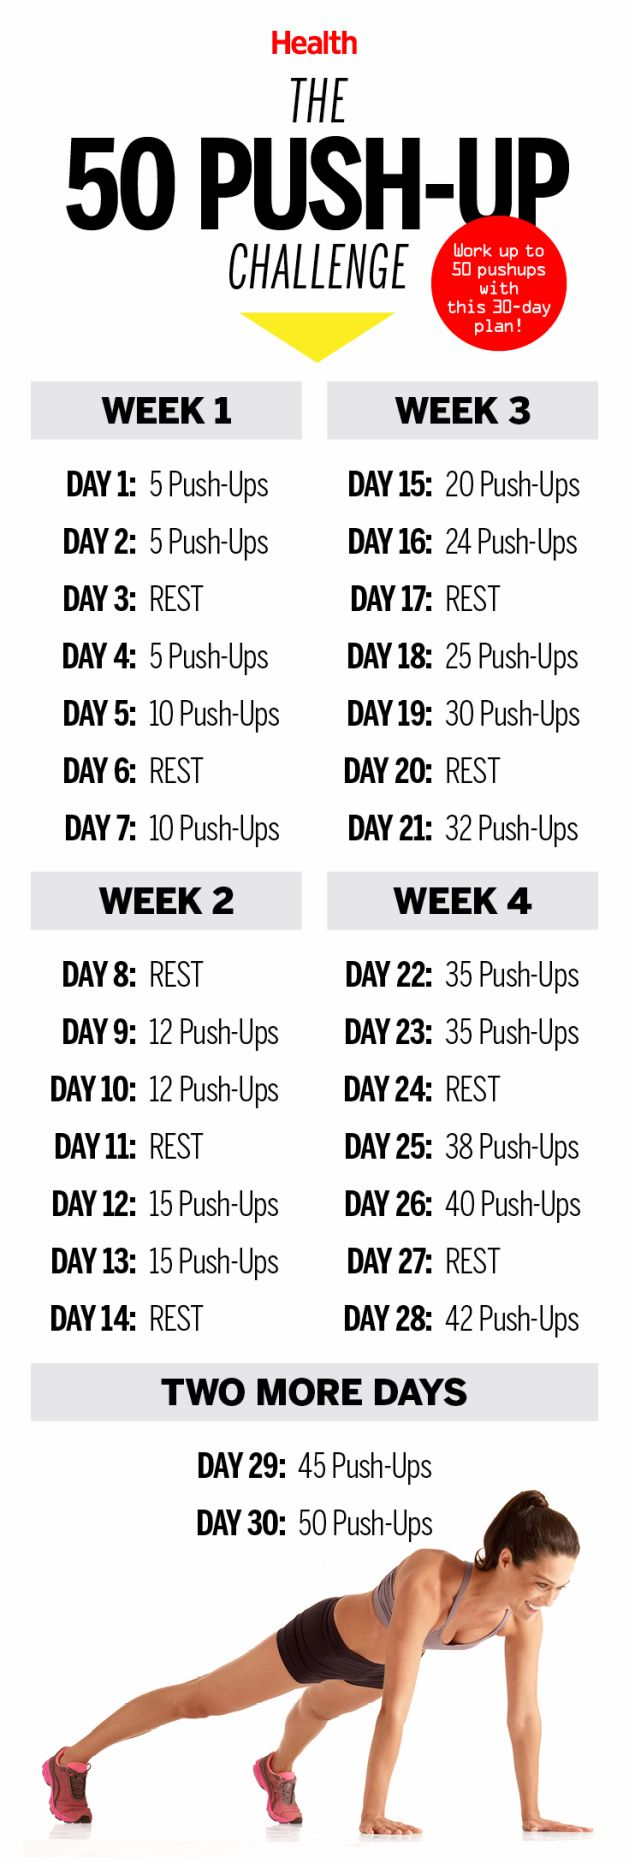 Push yourself to complete every day of this 50 push-up challenge. You'll notice that your hard work paid off when your arms look sculpted and toned in your tank tops this summer!